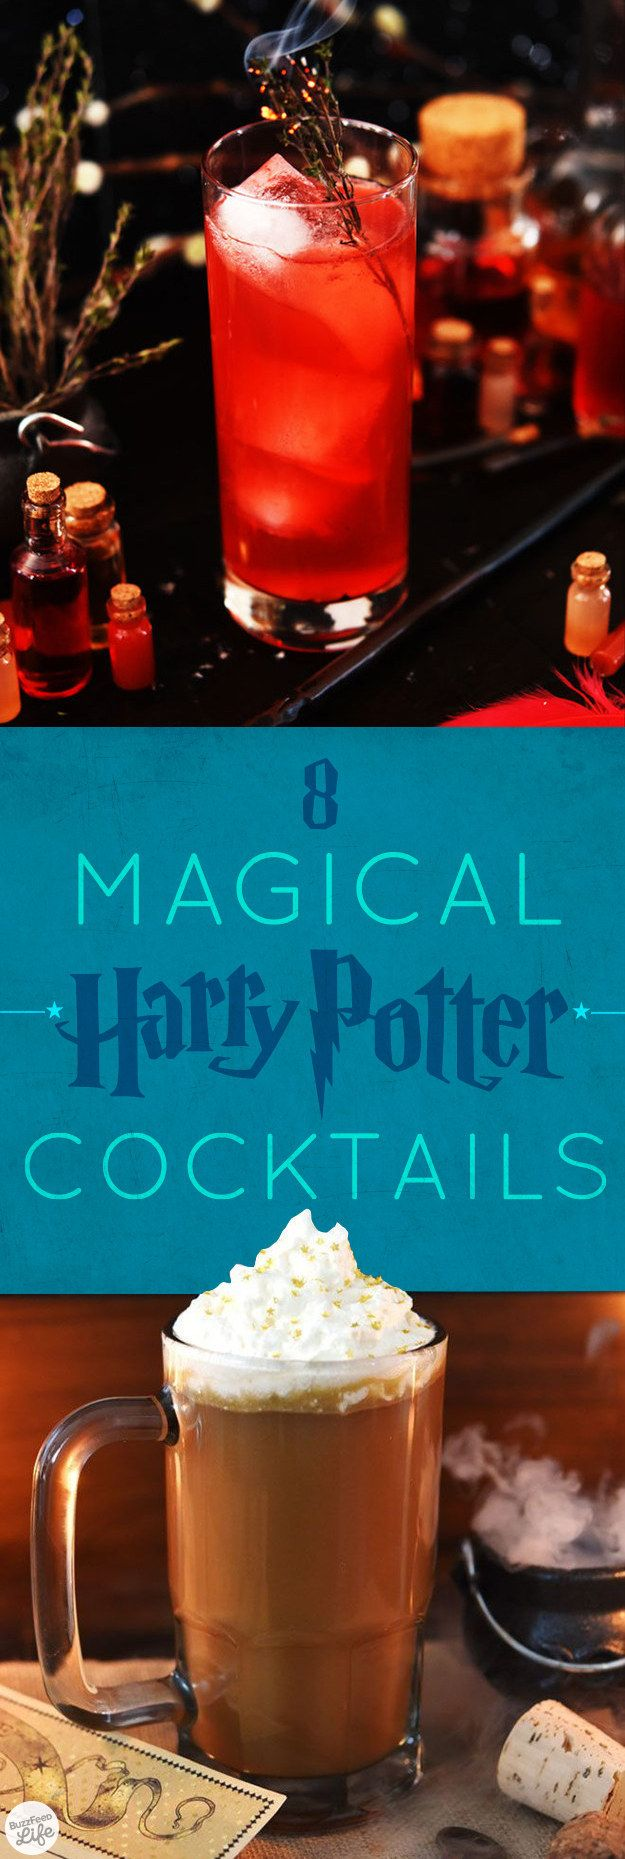 8 Magical And Delicious Harry Potter Cocktails#.nj2B0Aex1#.nj2B0Aex1